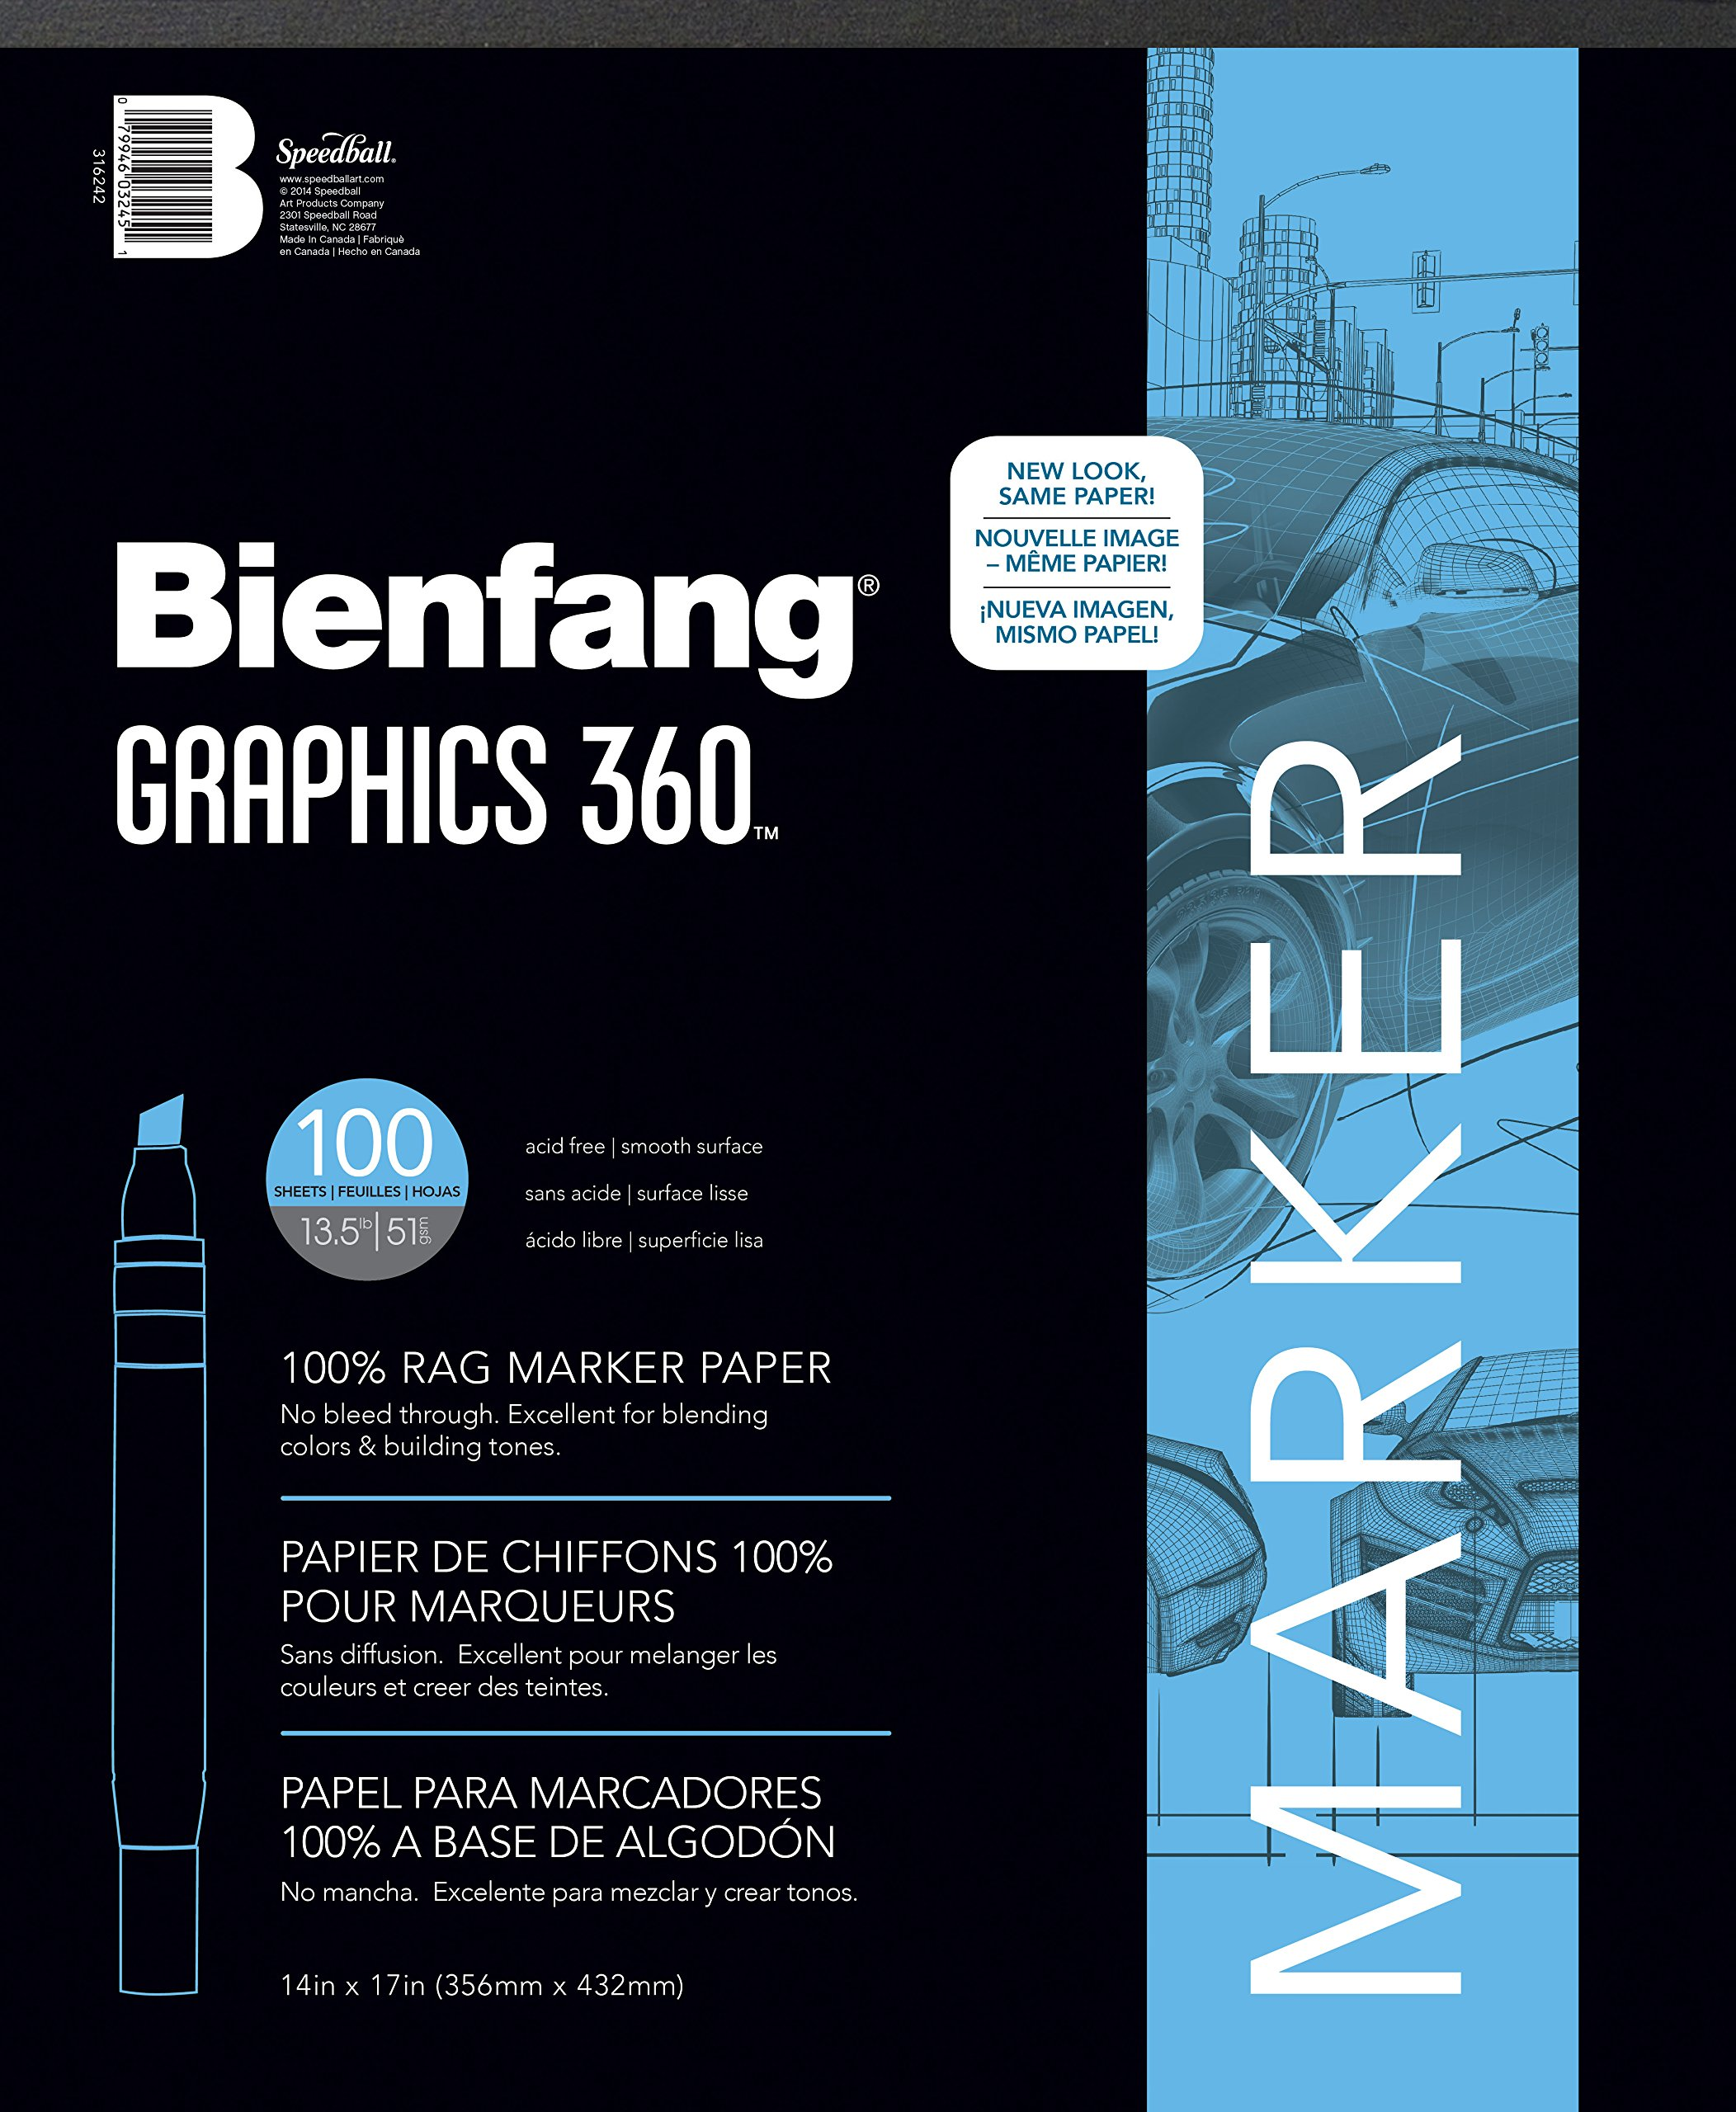 Bienfang Graphics 14-Inch by 17-Inch 360 Paper Pad, 100 Sheets by Bienfang